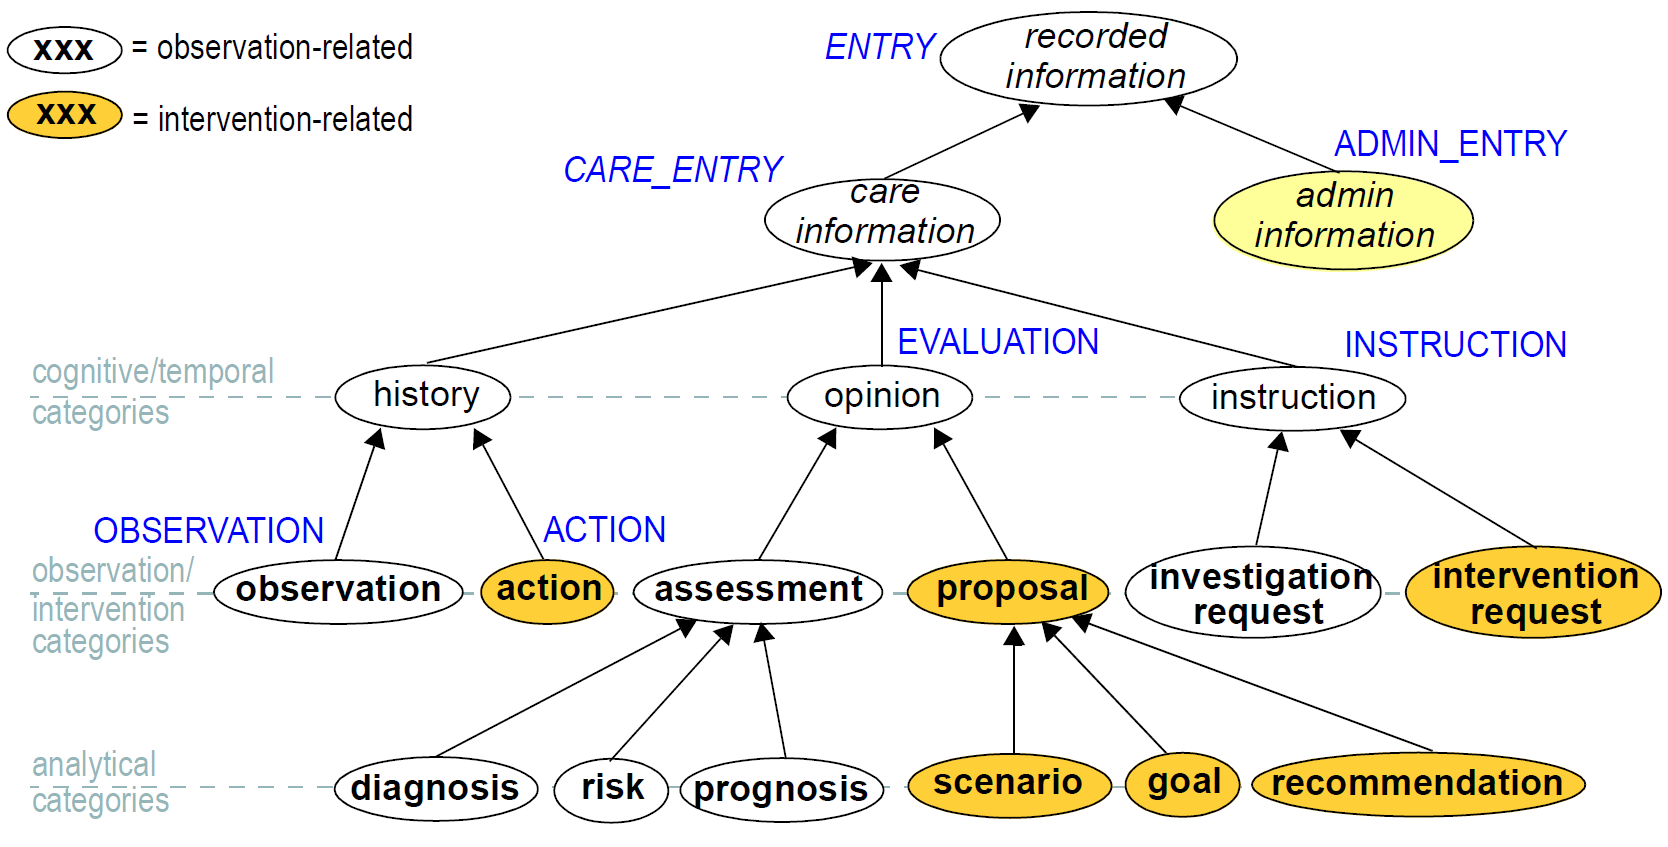 Ehr Information Model Application Life Cycle Uml Protocol State Machine Diagram Example Figure 17 The Clinical Investigator Recording Cir Ontology